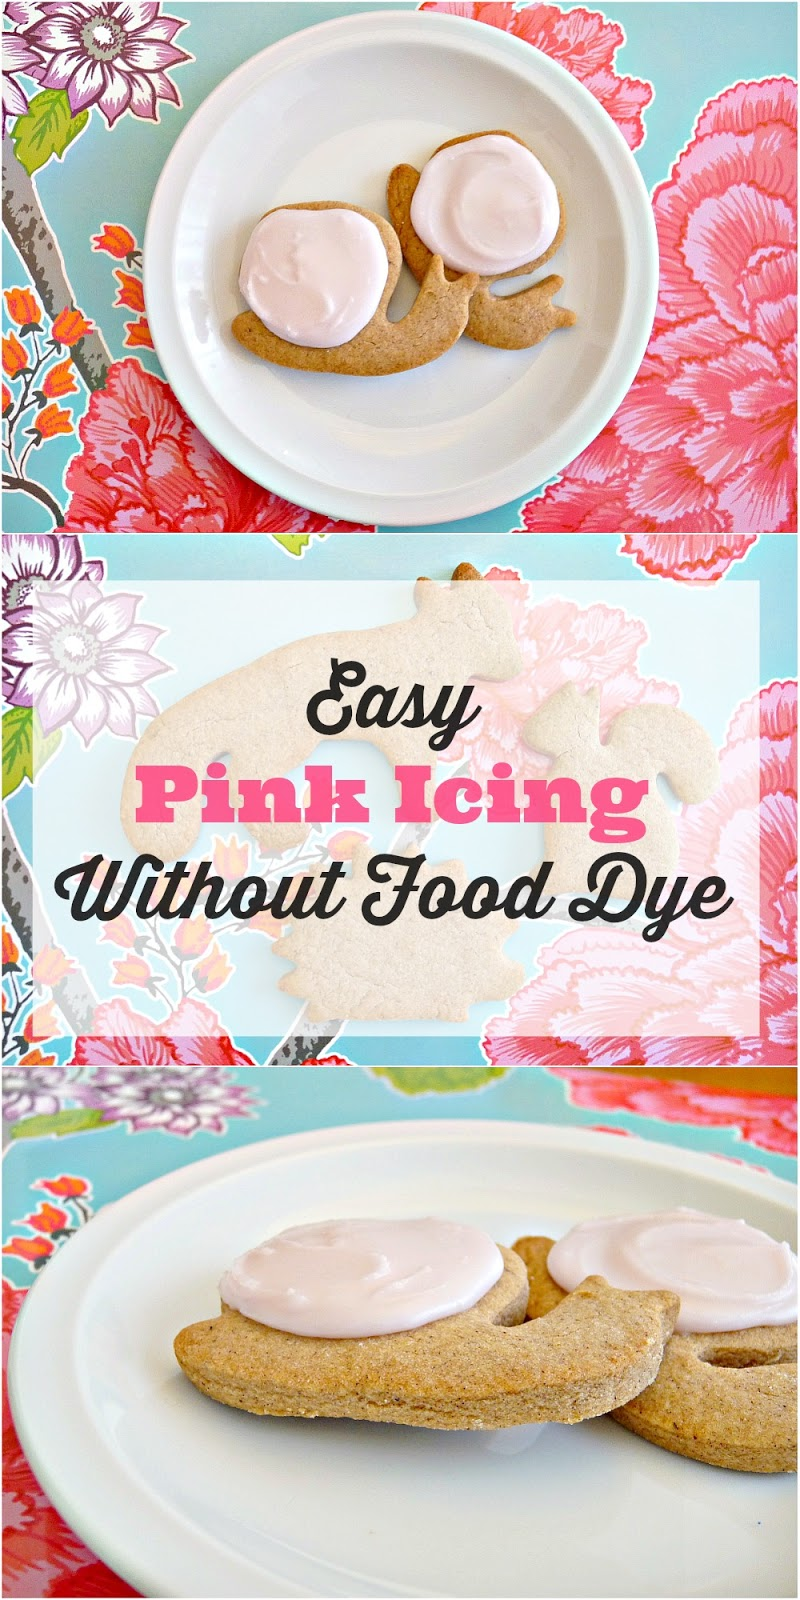 How to make pink icing without food dye